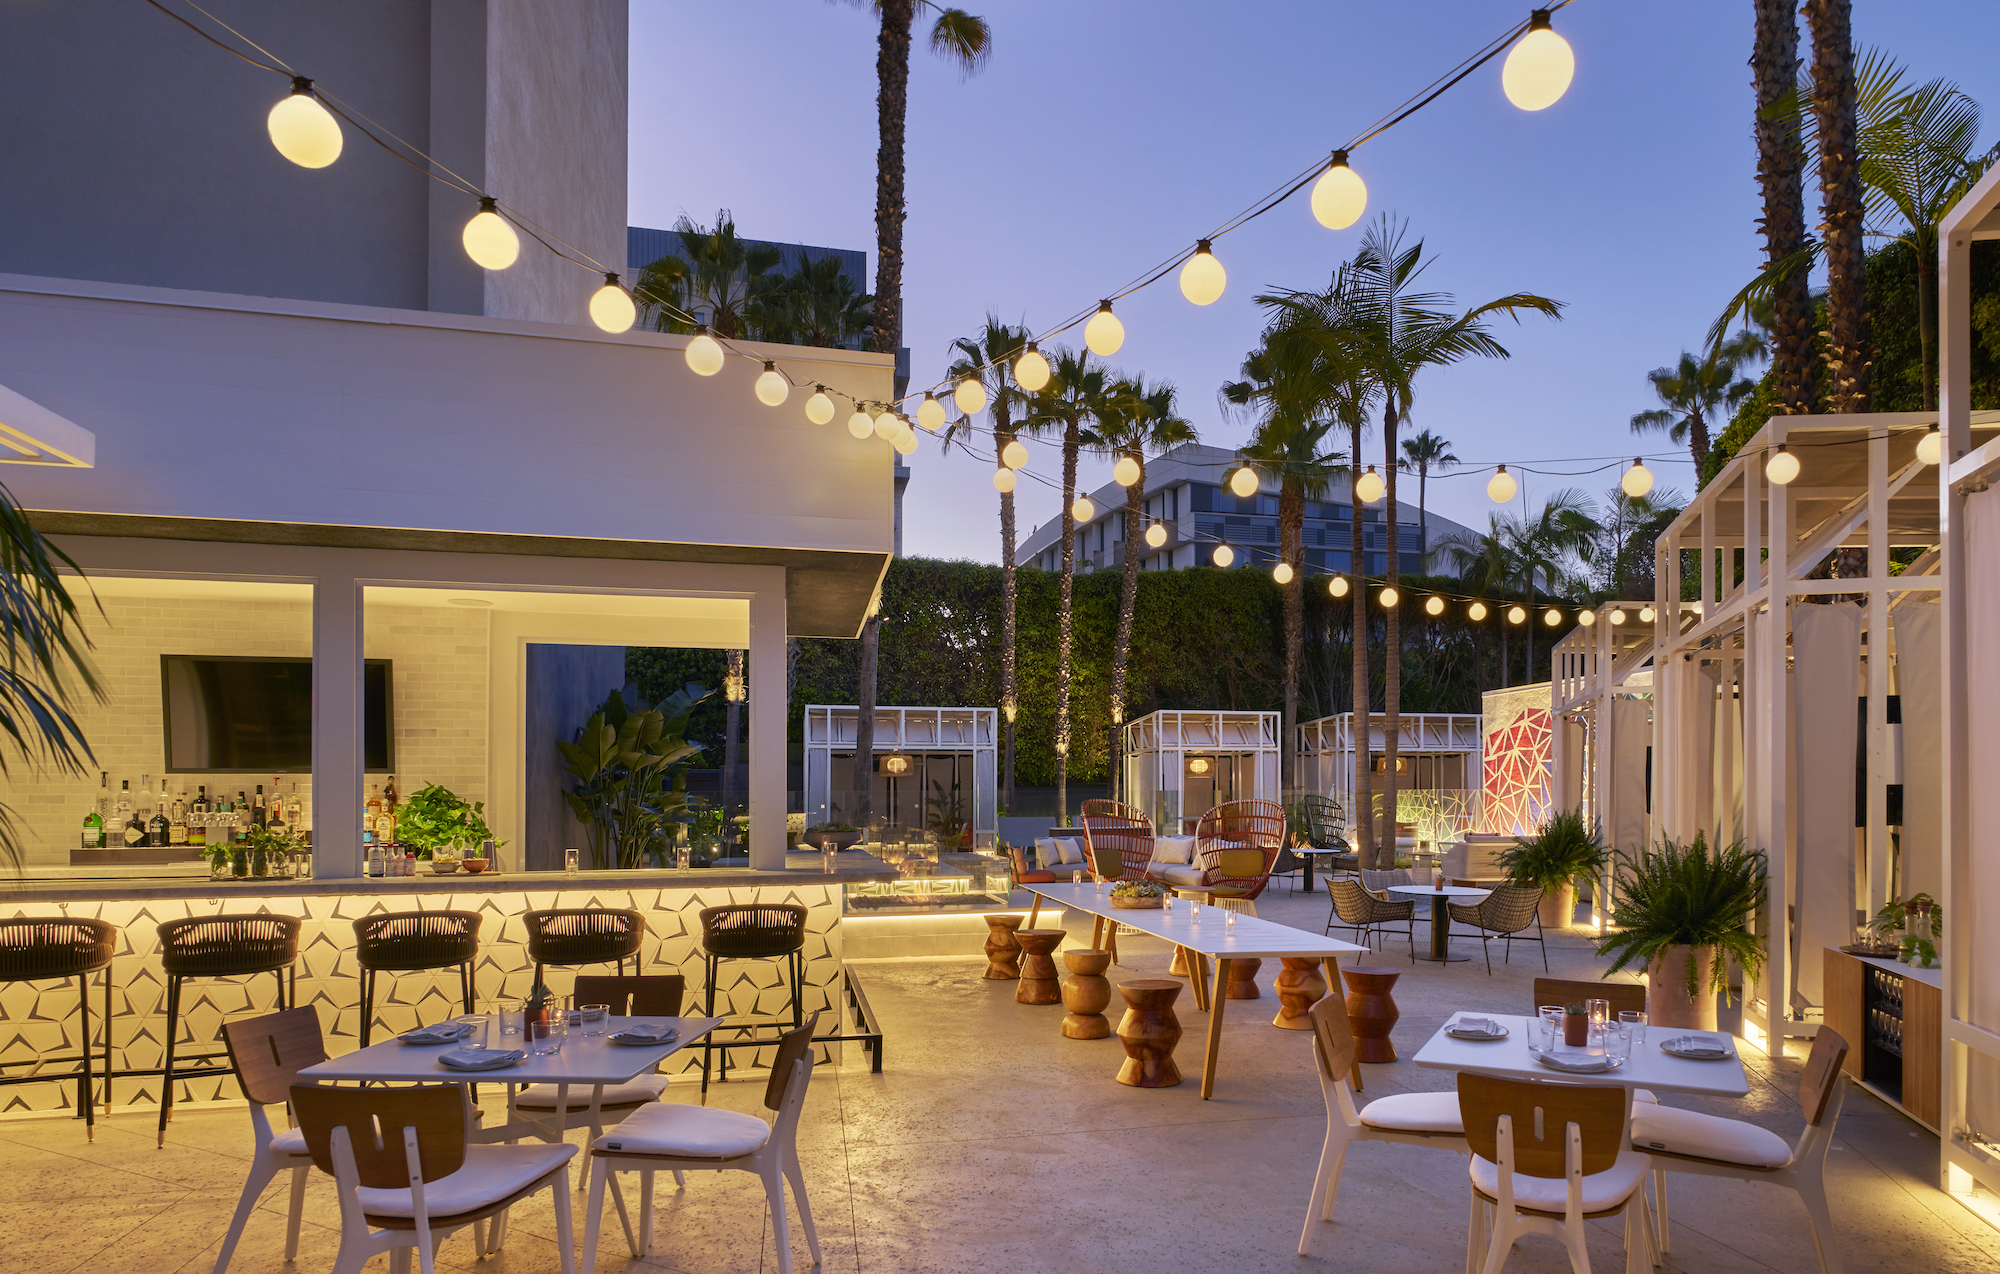 String lights and evening sunset at an outdoor restaurant bar with cabanas.